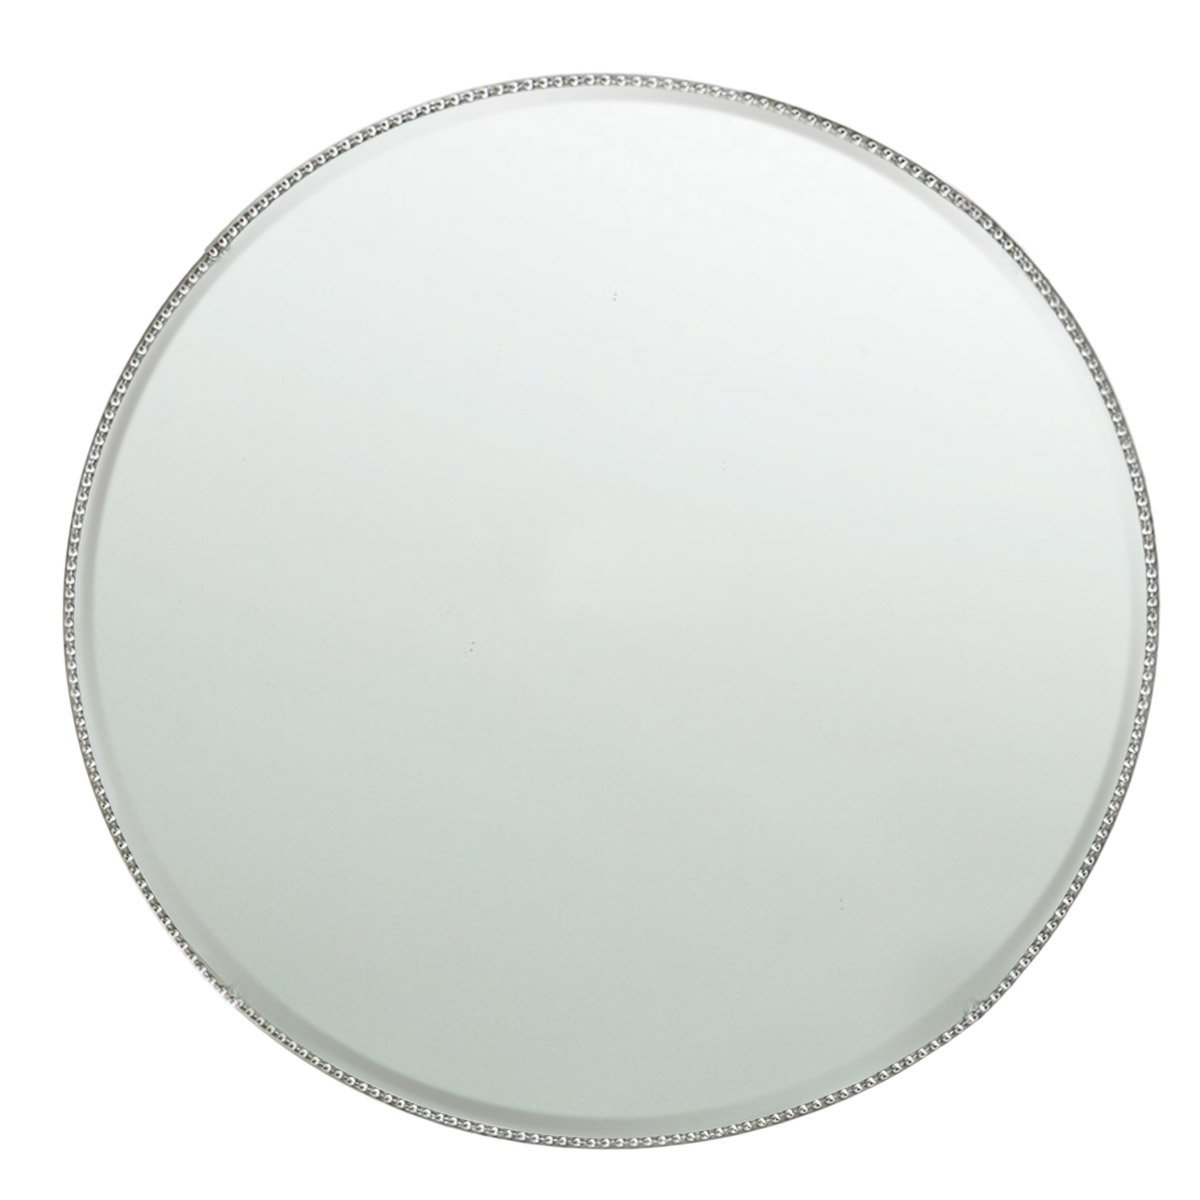 ChargeIt by Jay Bead Rim Mirror Charger Plate/Pillar Plate, Silver 1331677